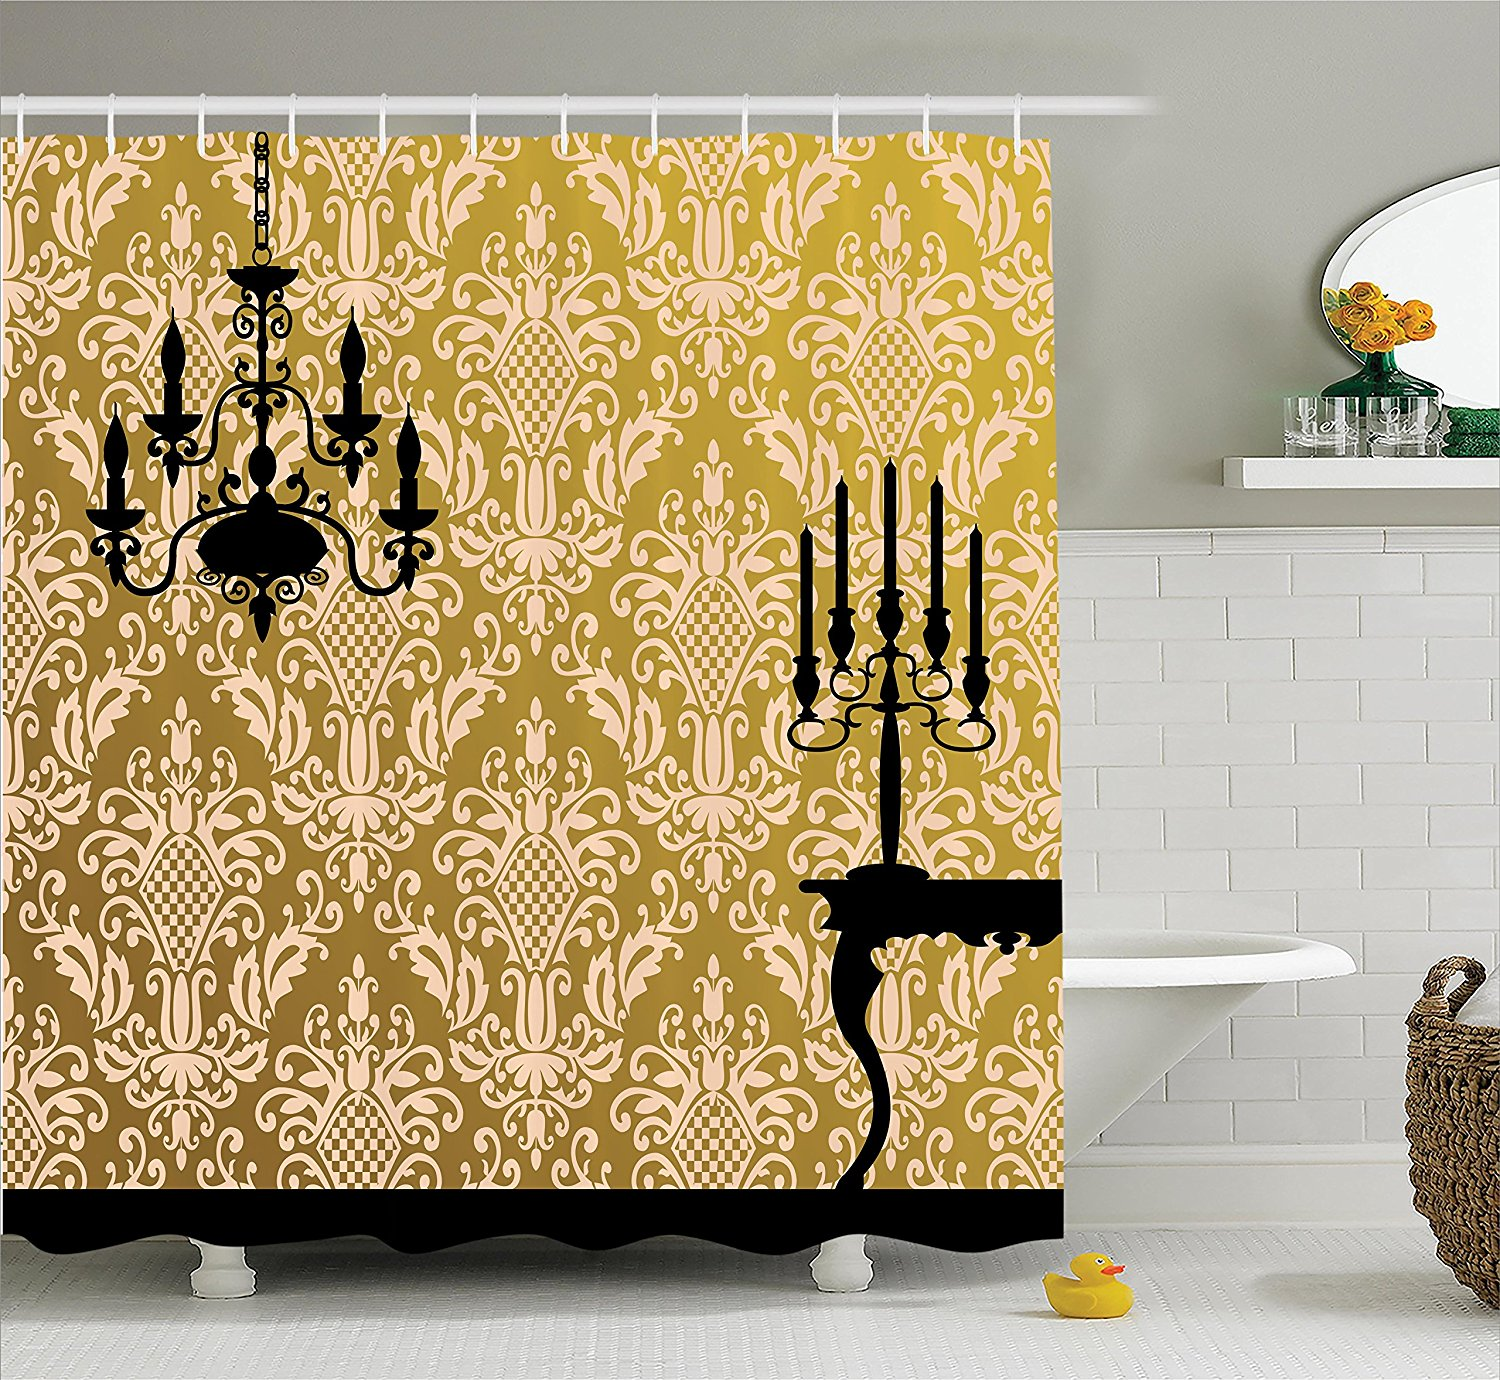 Damask Decor Shower Curtain Set By , English Country House Damask Motif On Wall And Chandelier Silhouettes Renaissance Decor, Bathroom Accessories, 69W X 70L Inches.., By Ambesonne Ship from US